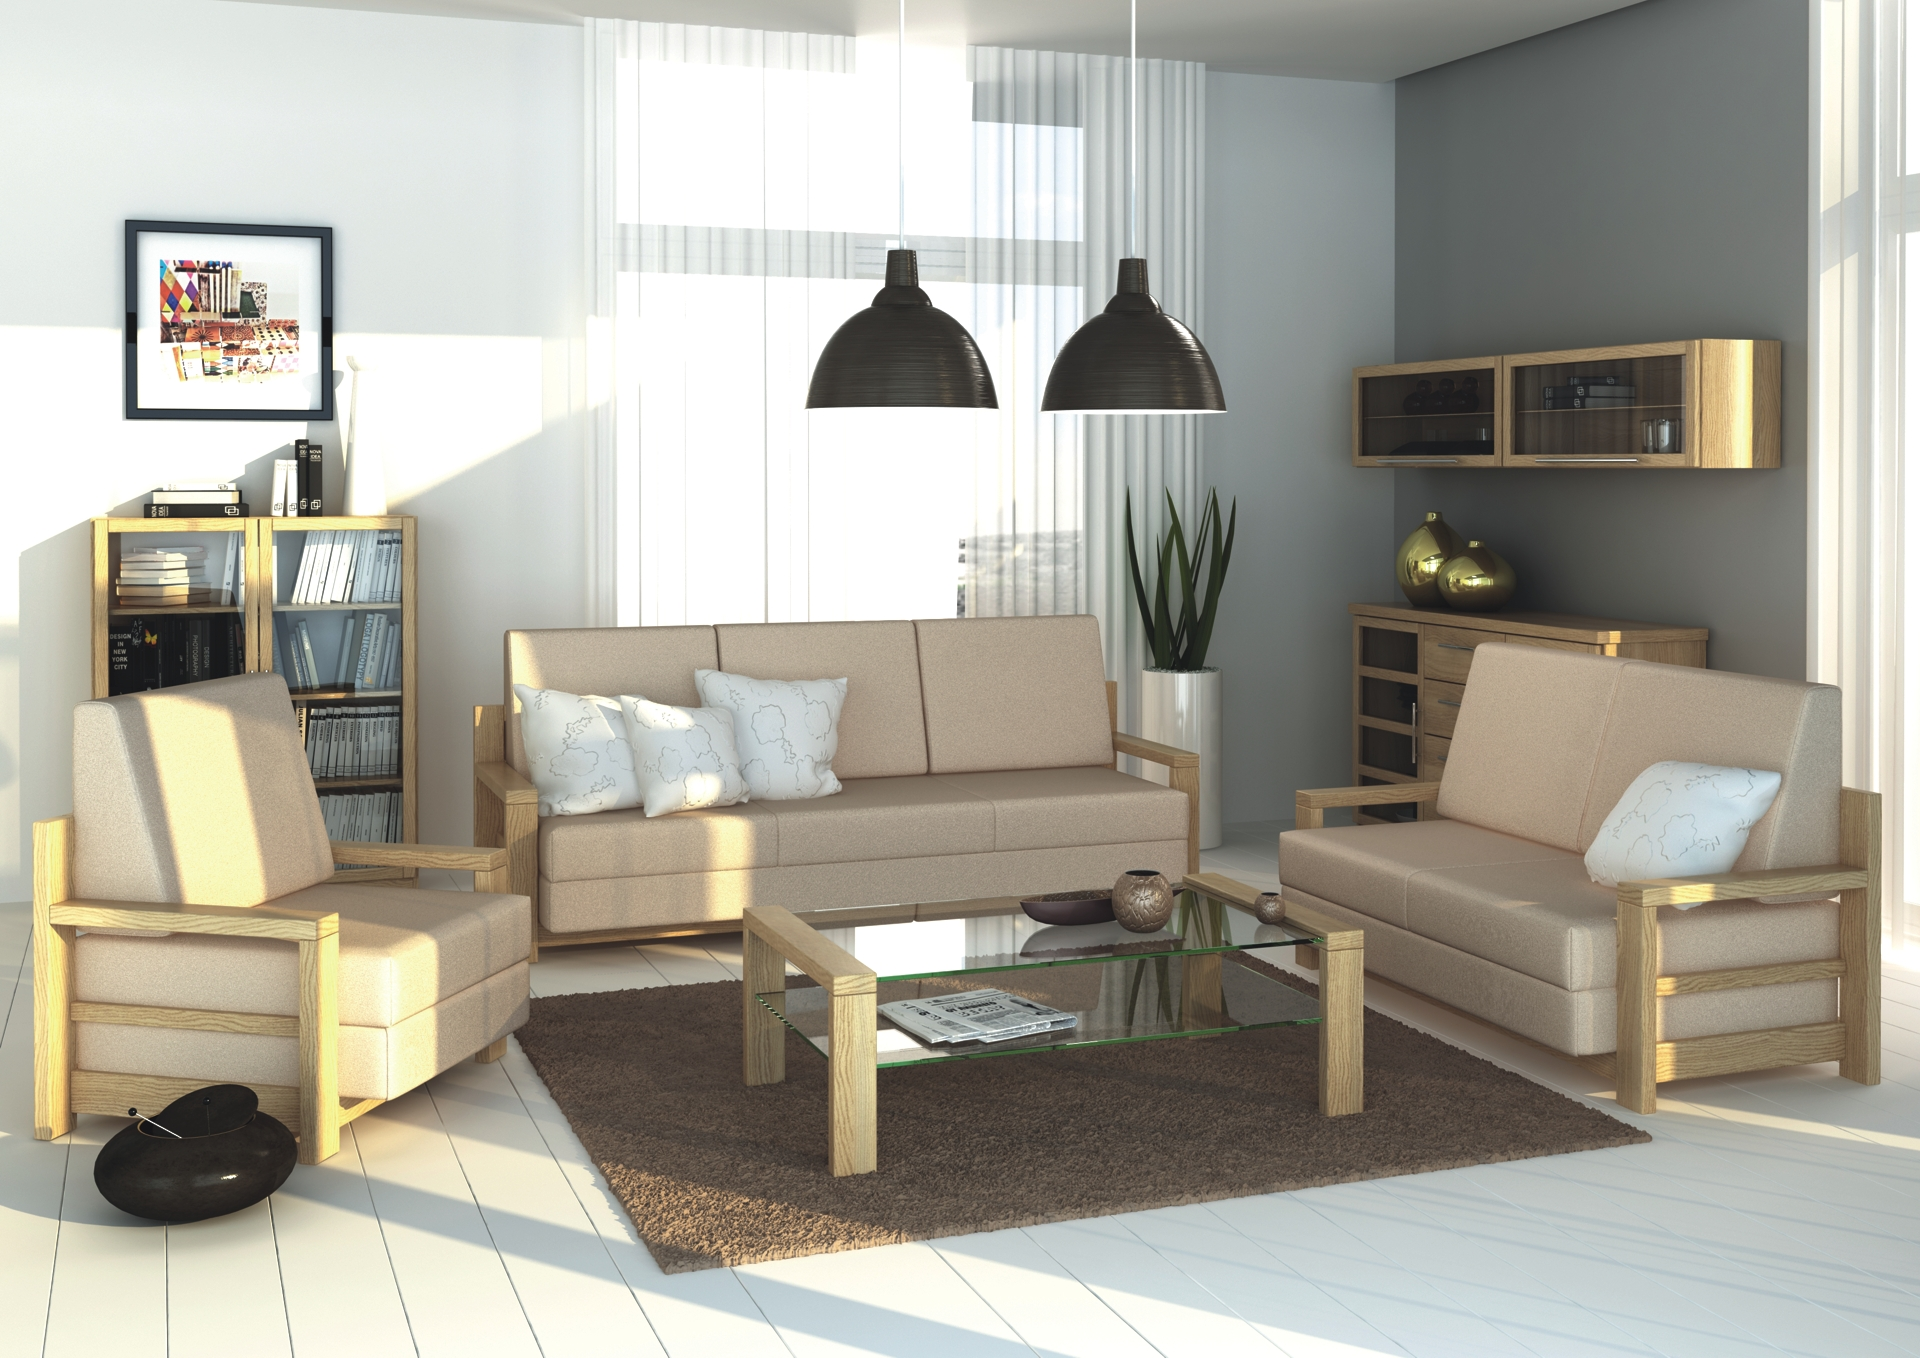 RÁCHEL sofa set - elegant sofa and comfortable bed for a guest